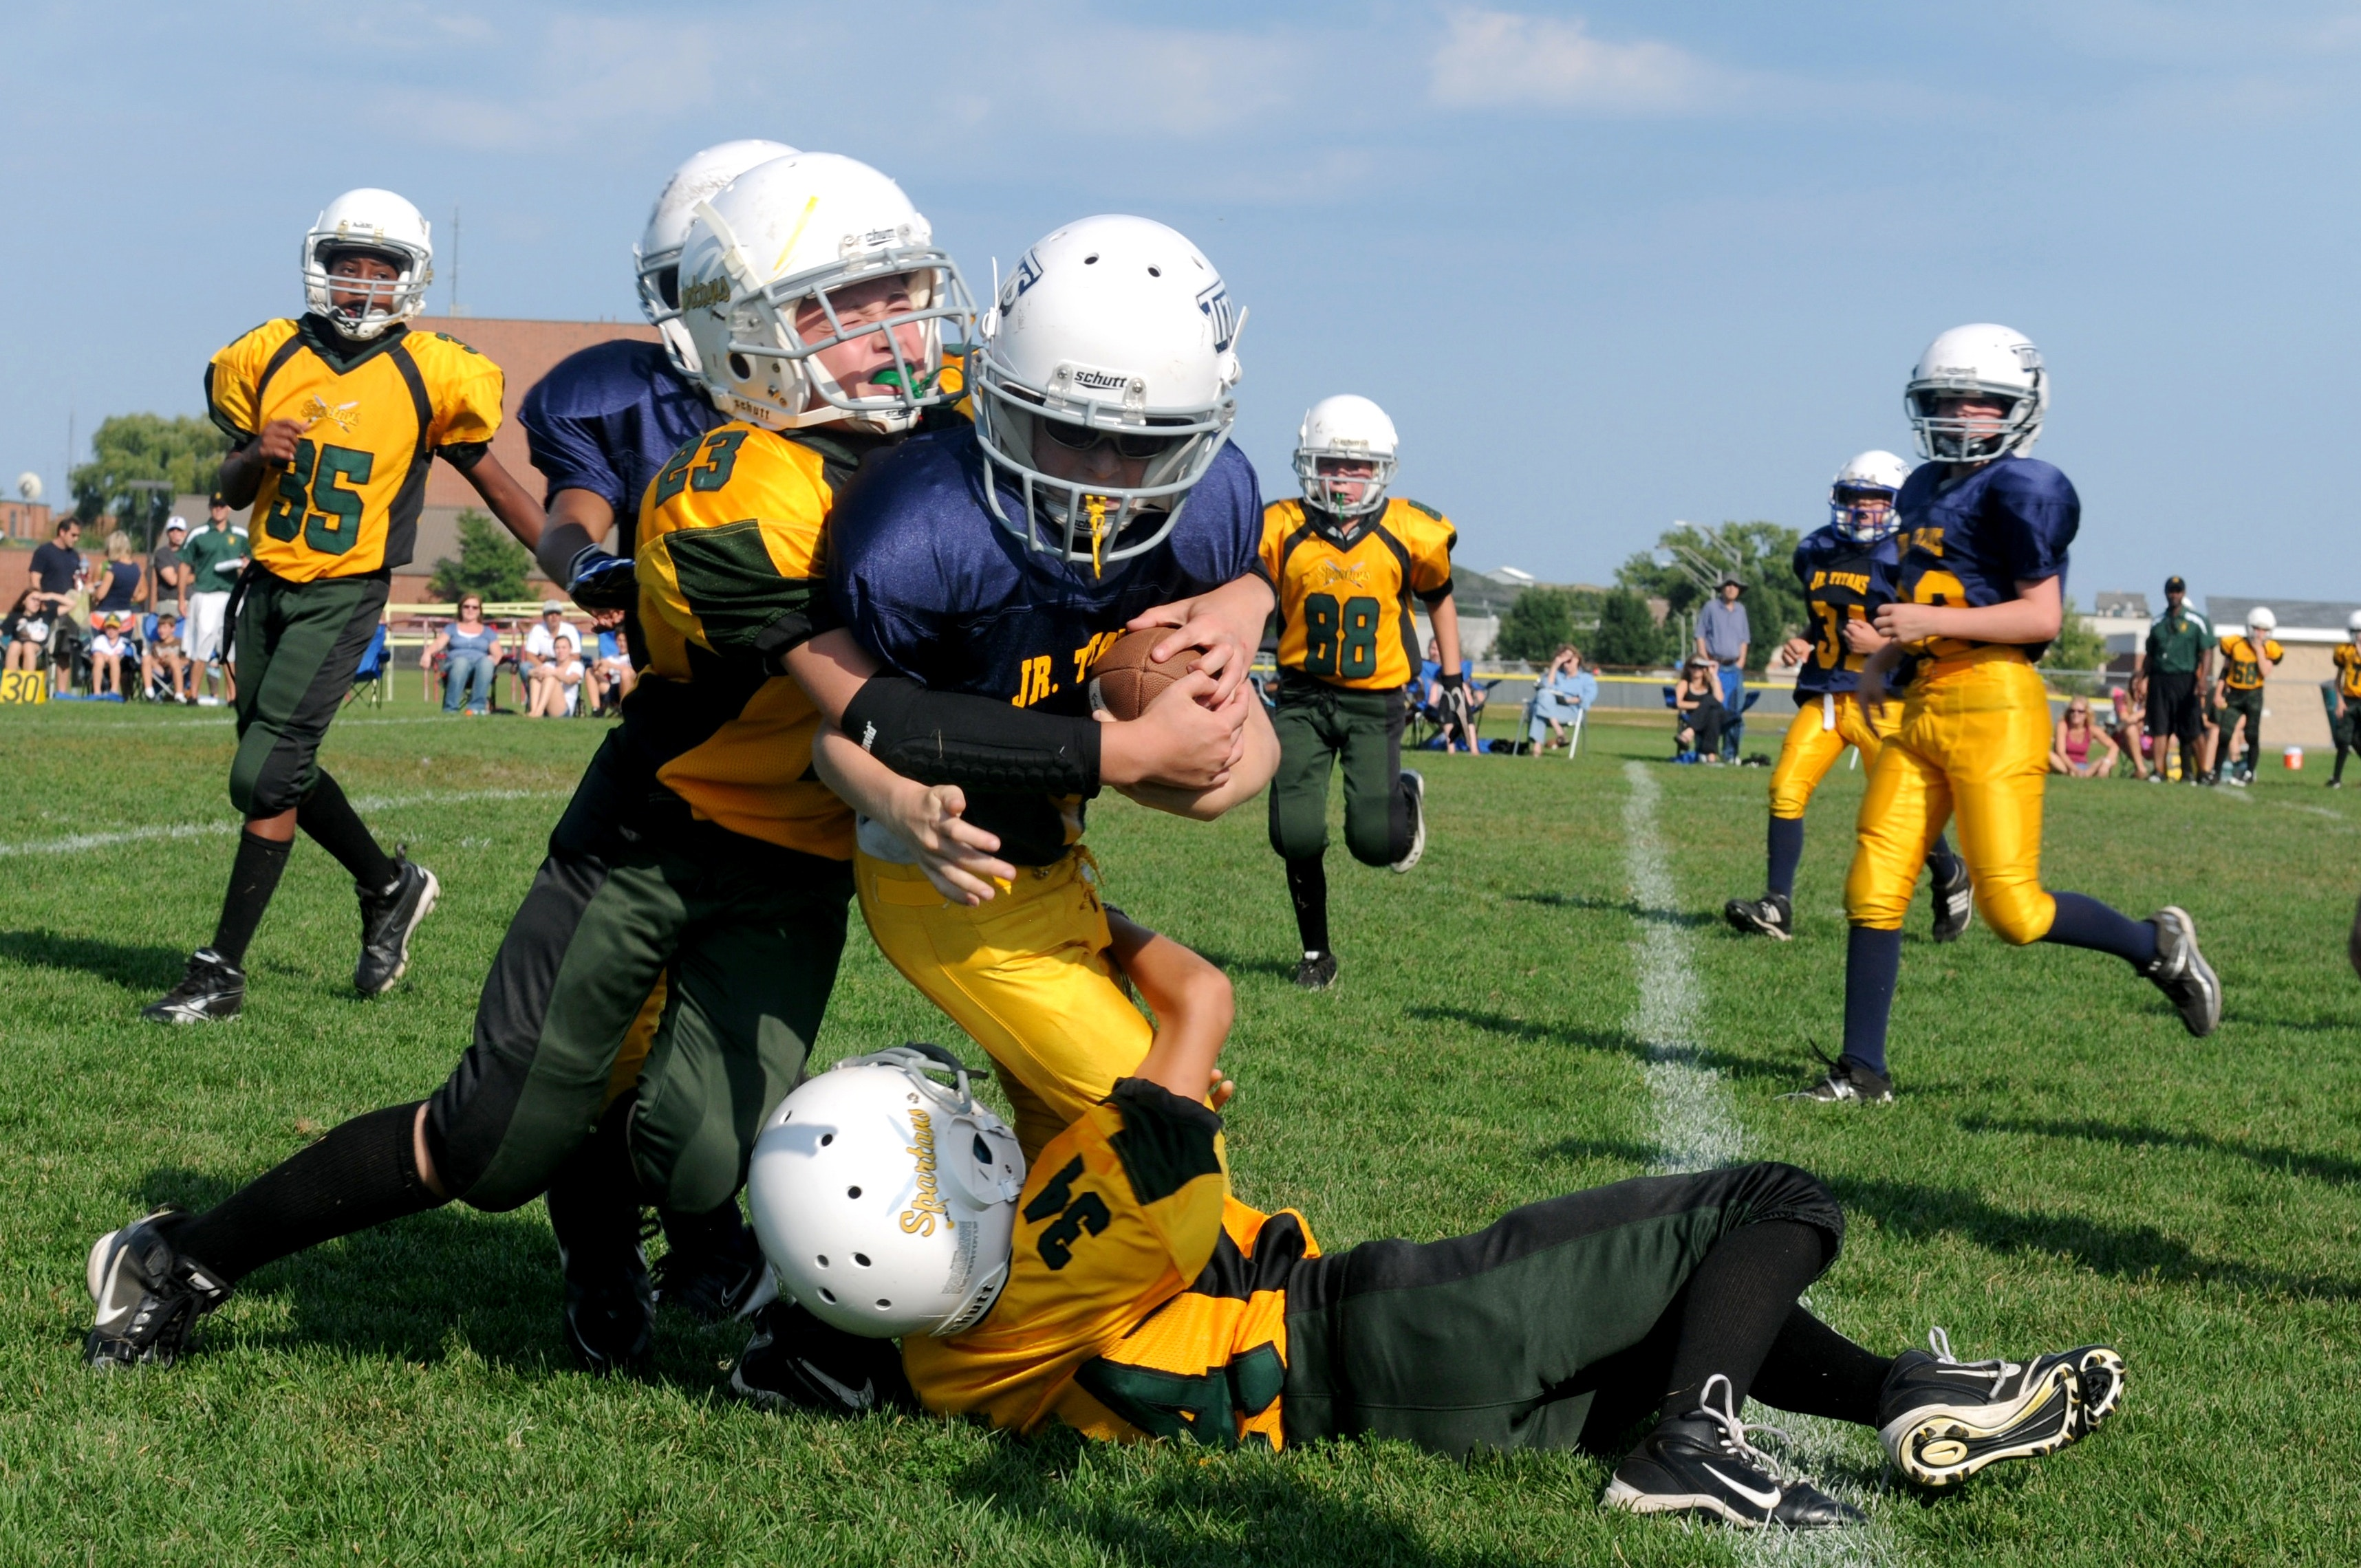 A tackle